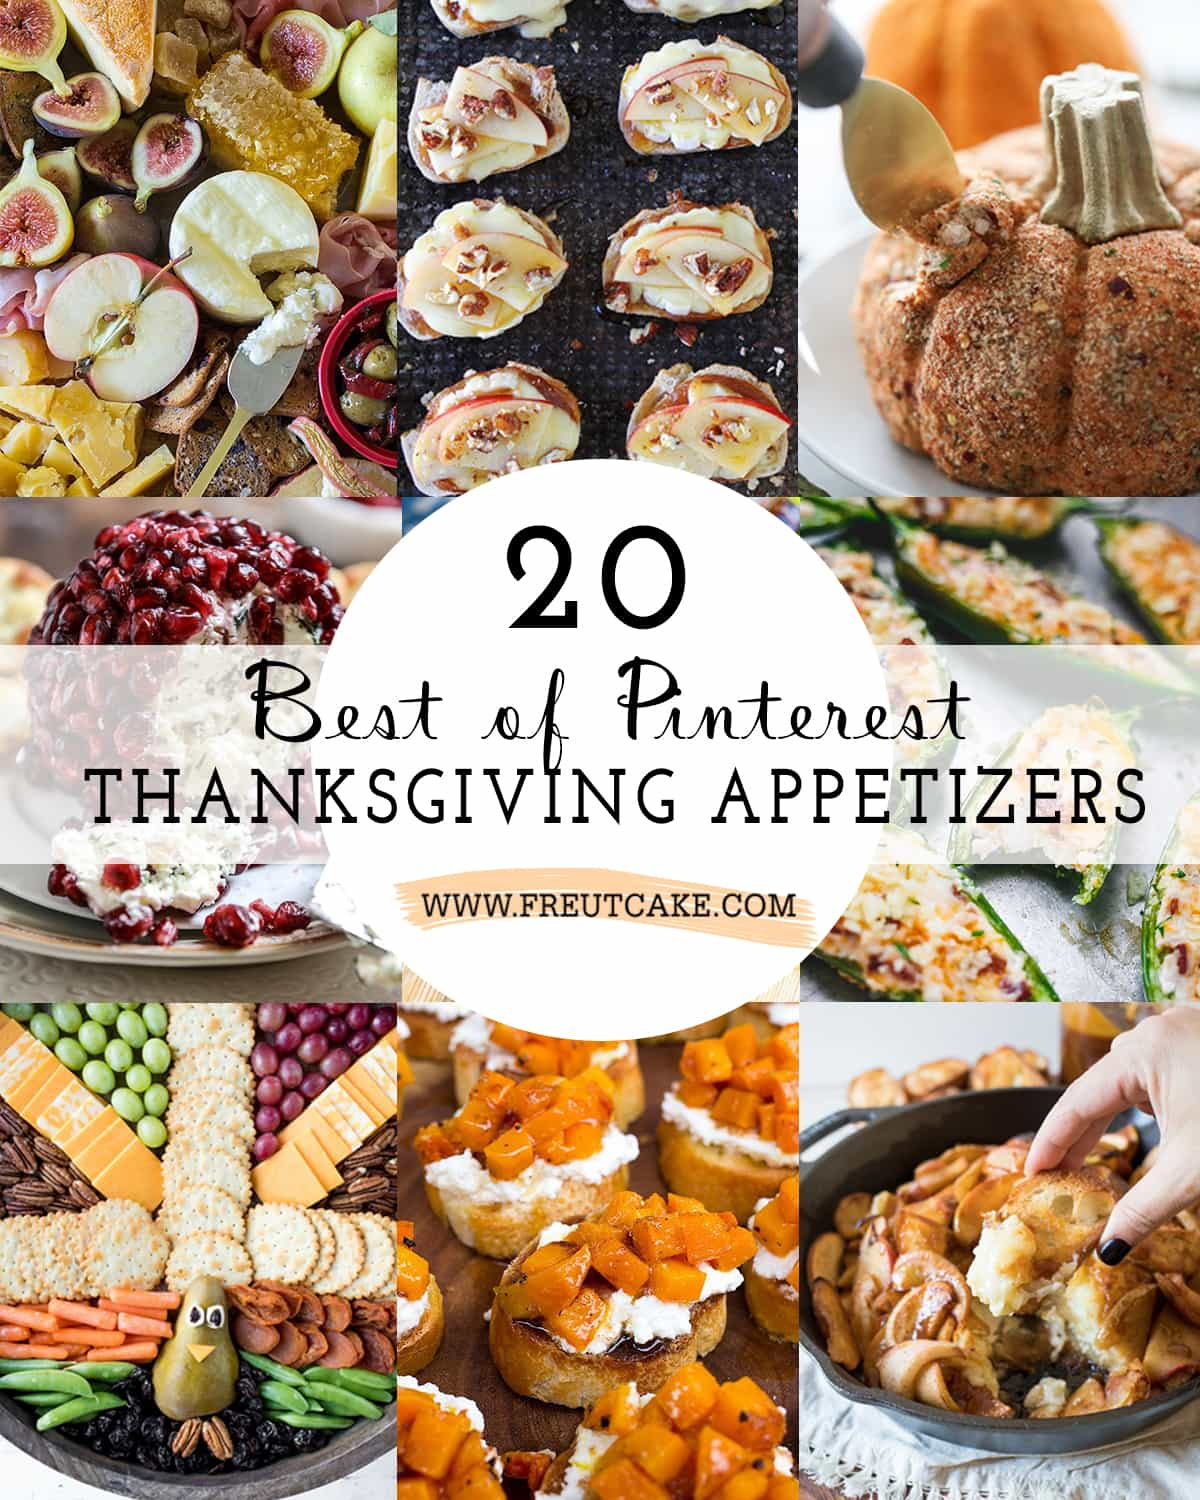 20 Best of Pinterest Thanksgiving Appetizers